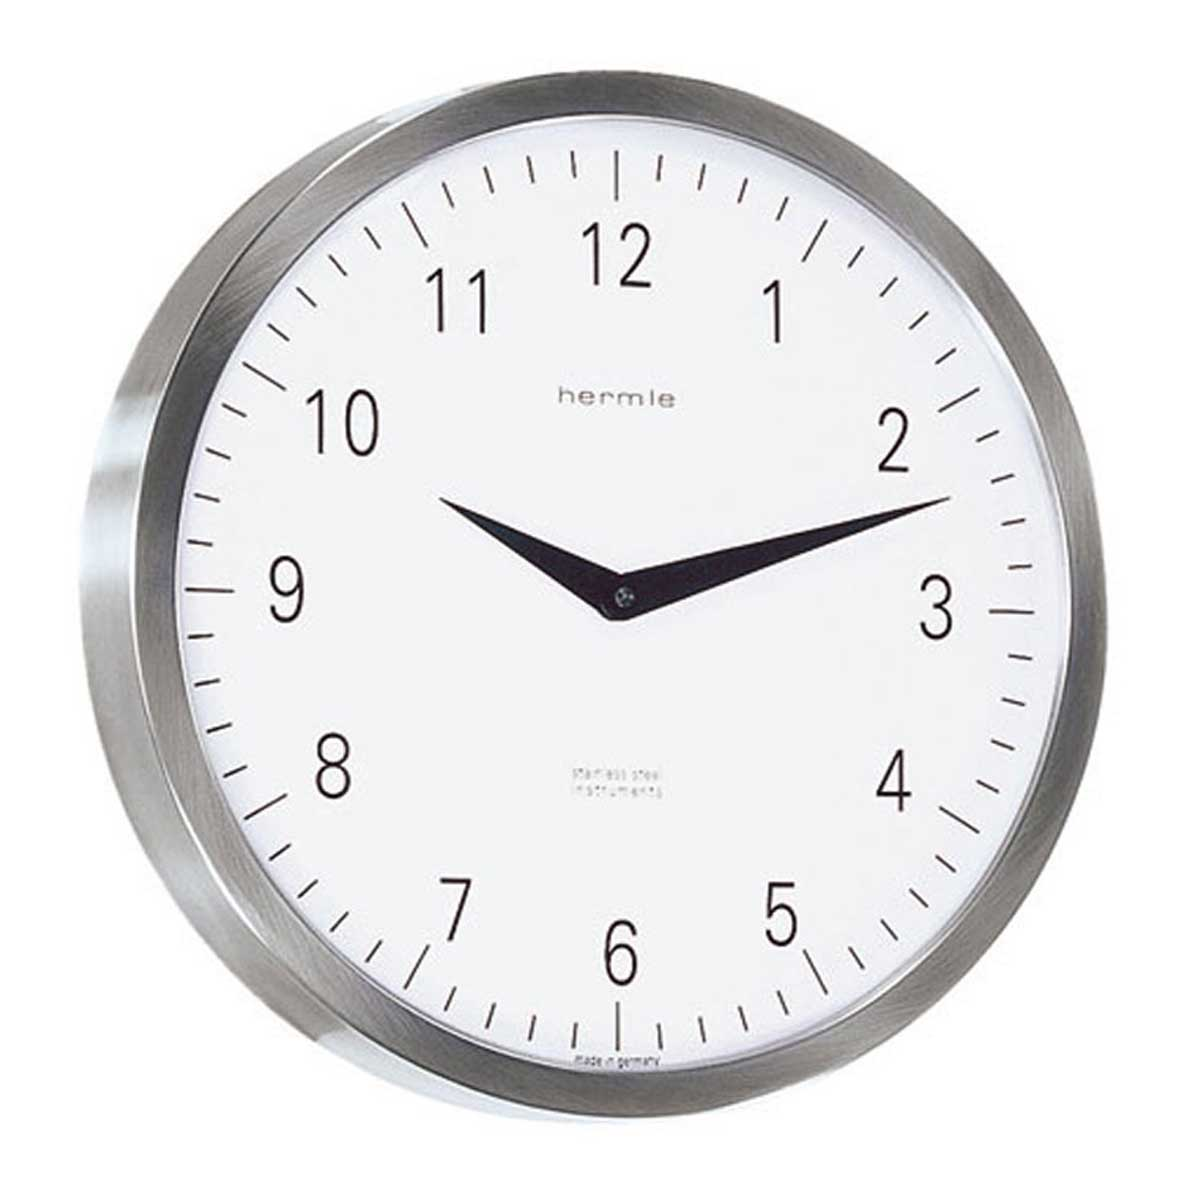 Hermle 30466-000870 Stainless Steel wall clock